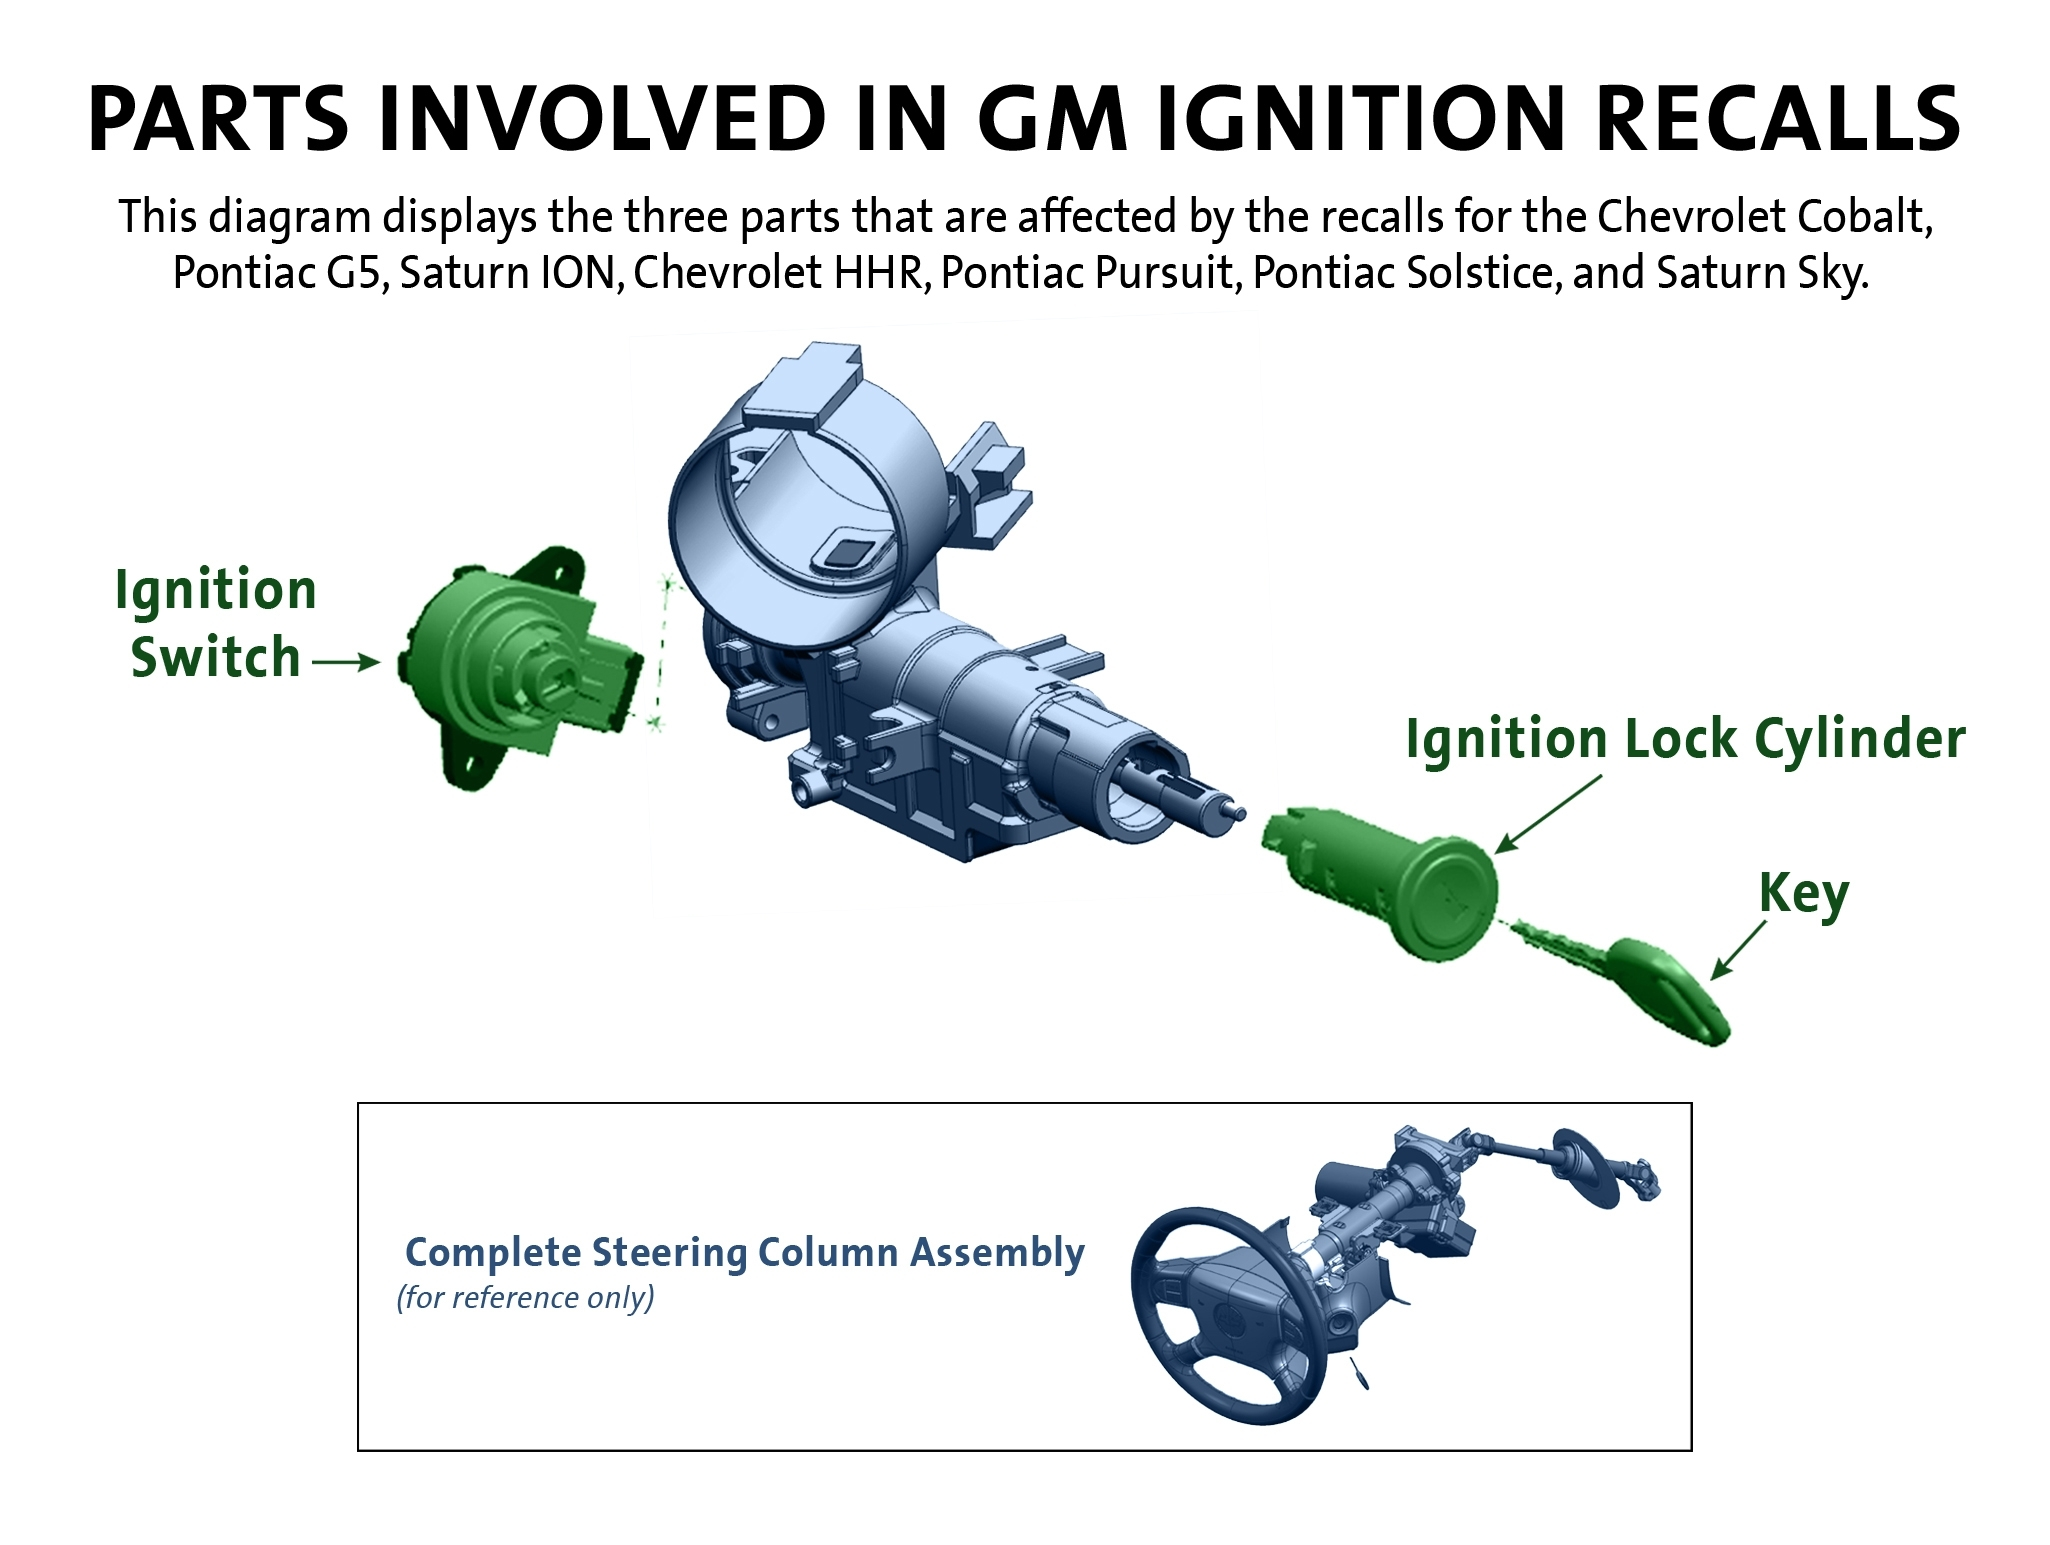 Gm Ignition Update - United States - Faq for Gm Parts Diagrams And Part Numbers